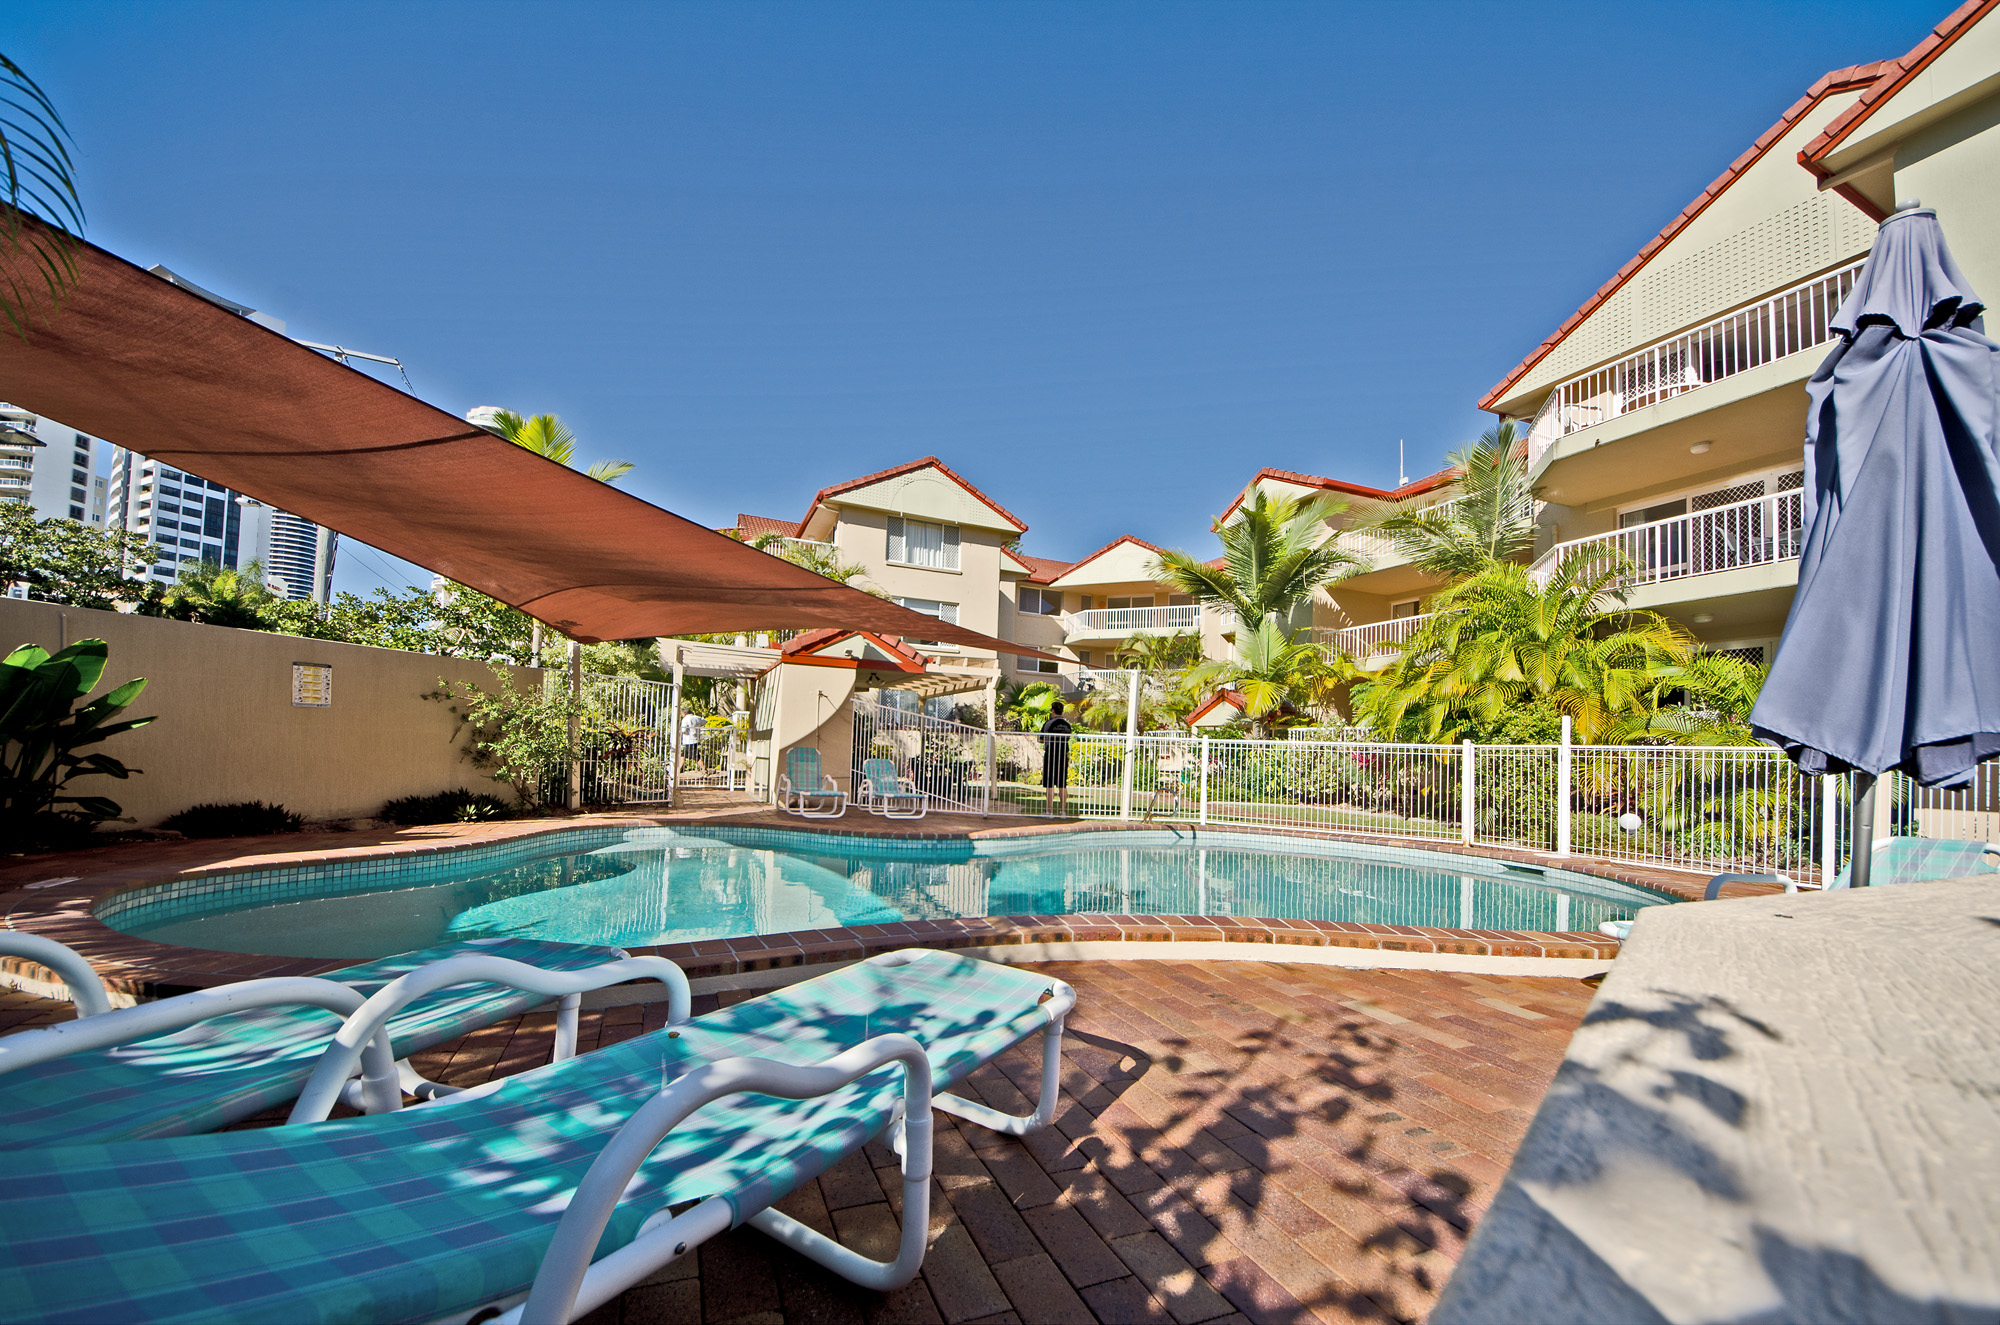 Broadbeach family accommodation